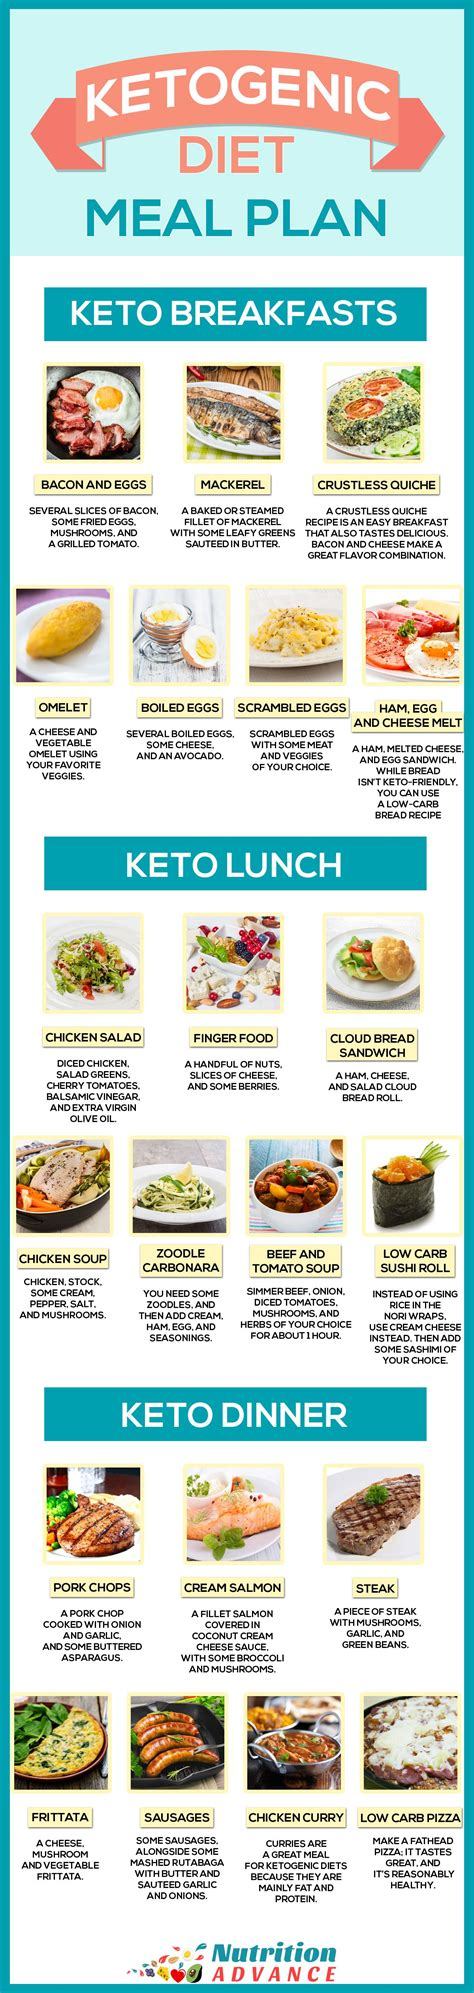 atkins diet  beginner keto diet menu images